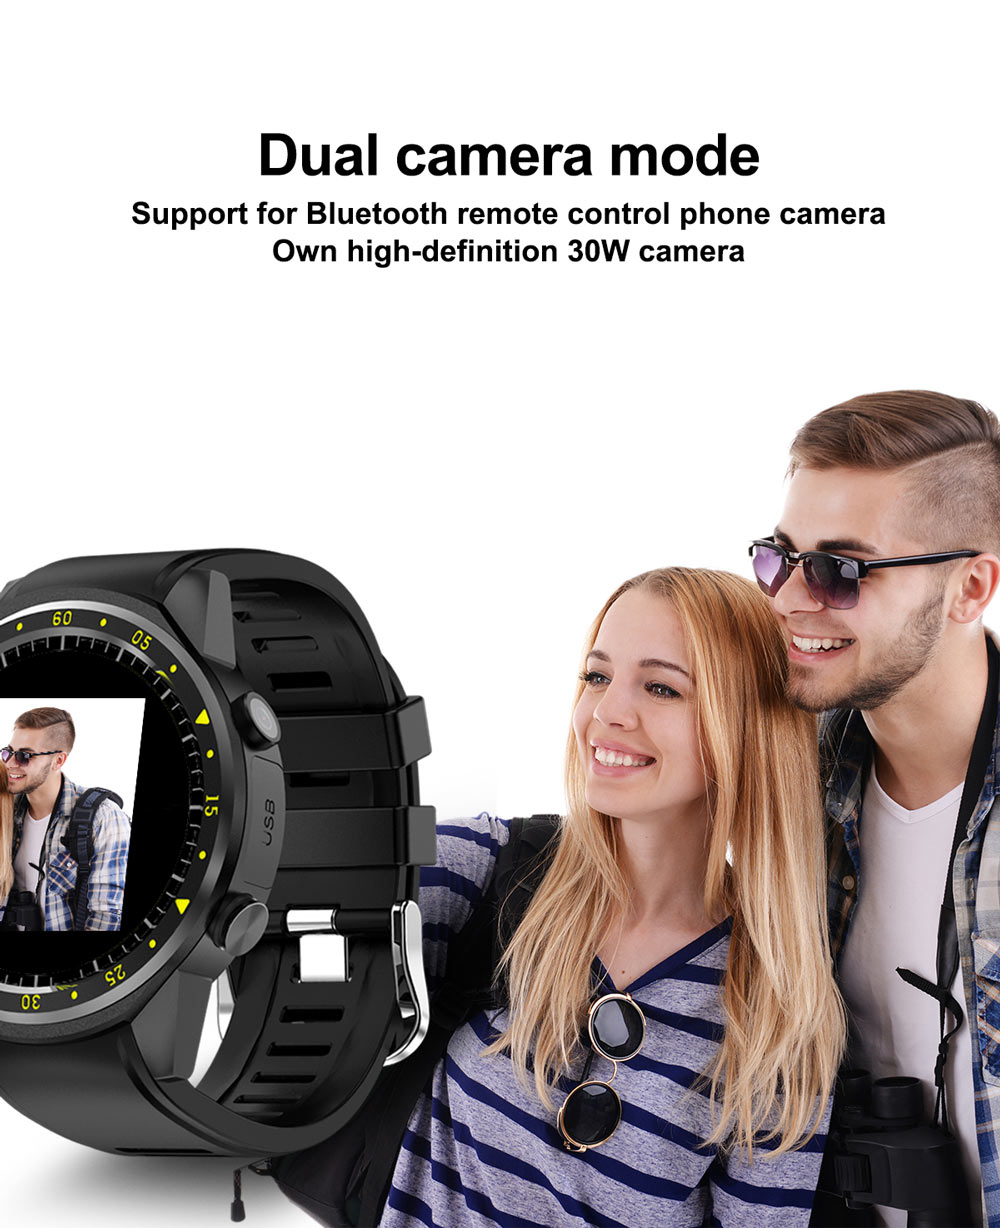 Hb6c44ef52d0f4c2f9dca9fac1682b688B - GPS Smart Watch Men With SIM Card Camera F1 Smartwatches Heart rate detection Sport phone connected watch android iOS Clock